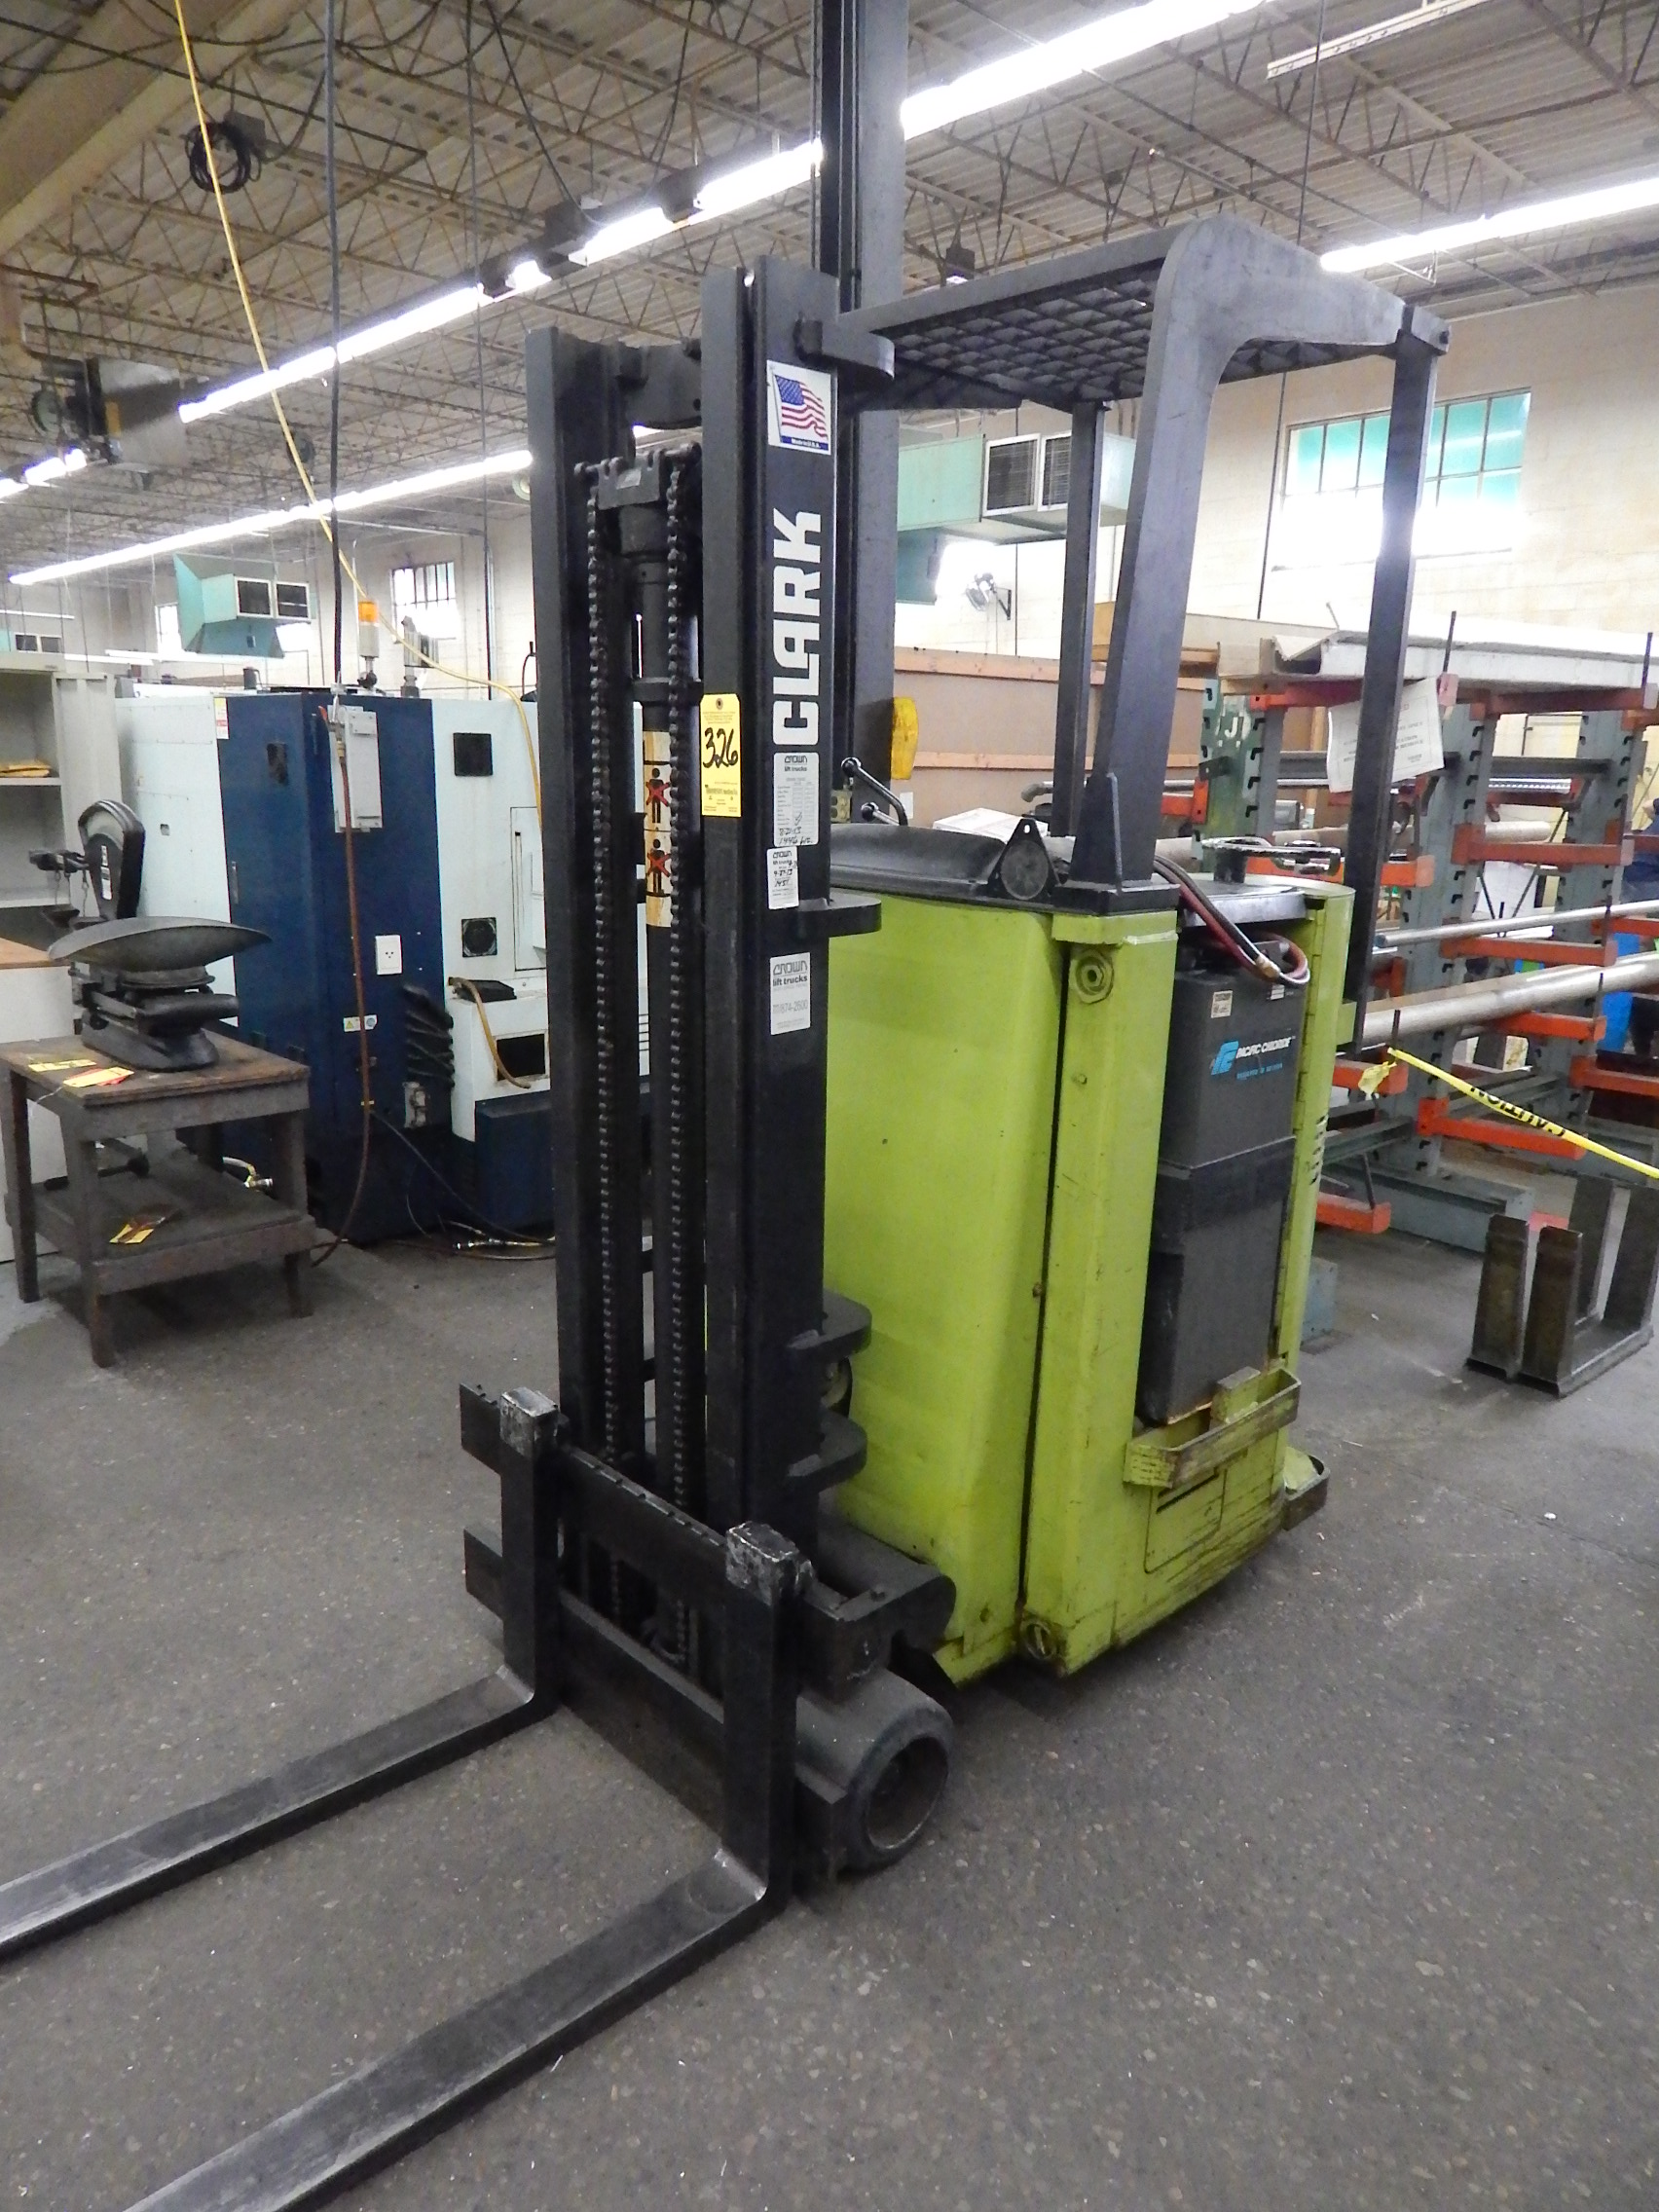 Lot 326 - Clark Model NST-25 Narrow Aisle Stand on Electric Forklift. s